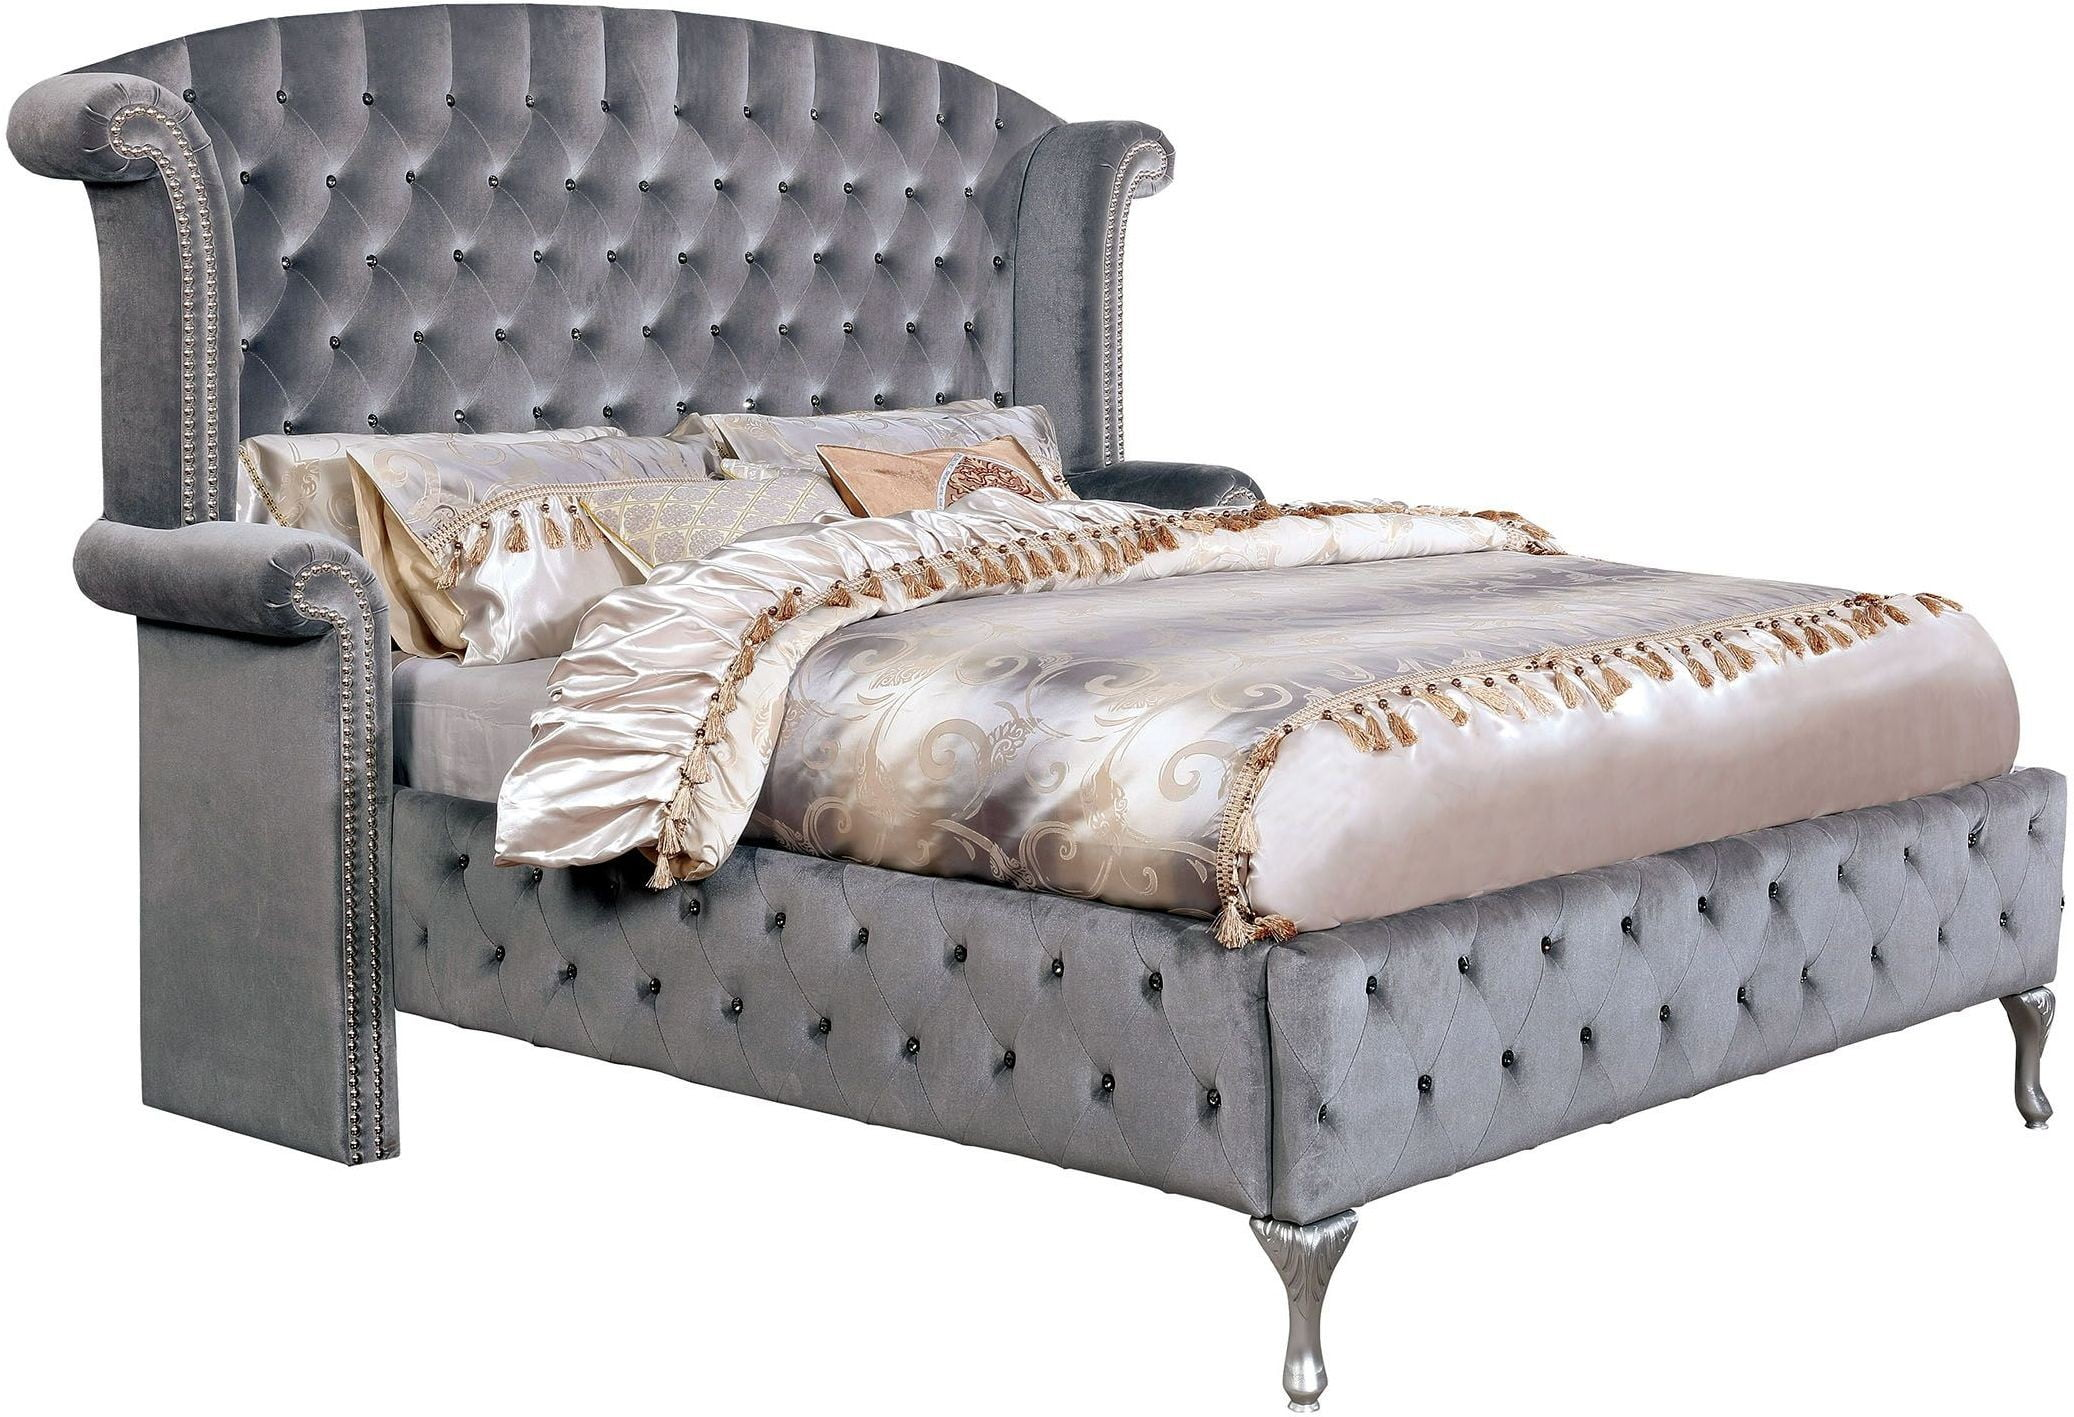 Alzir Gray Cal King Upholstered Platform Bed From